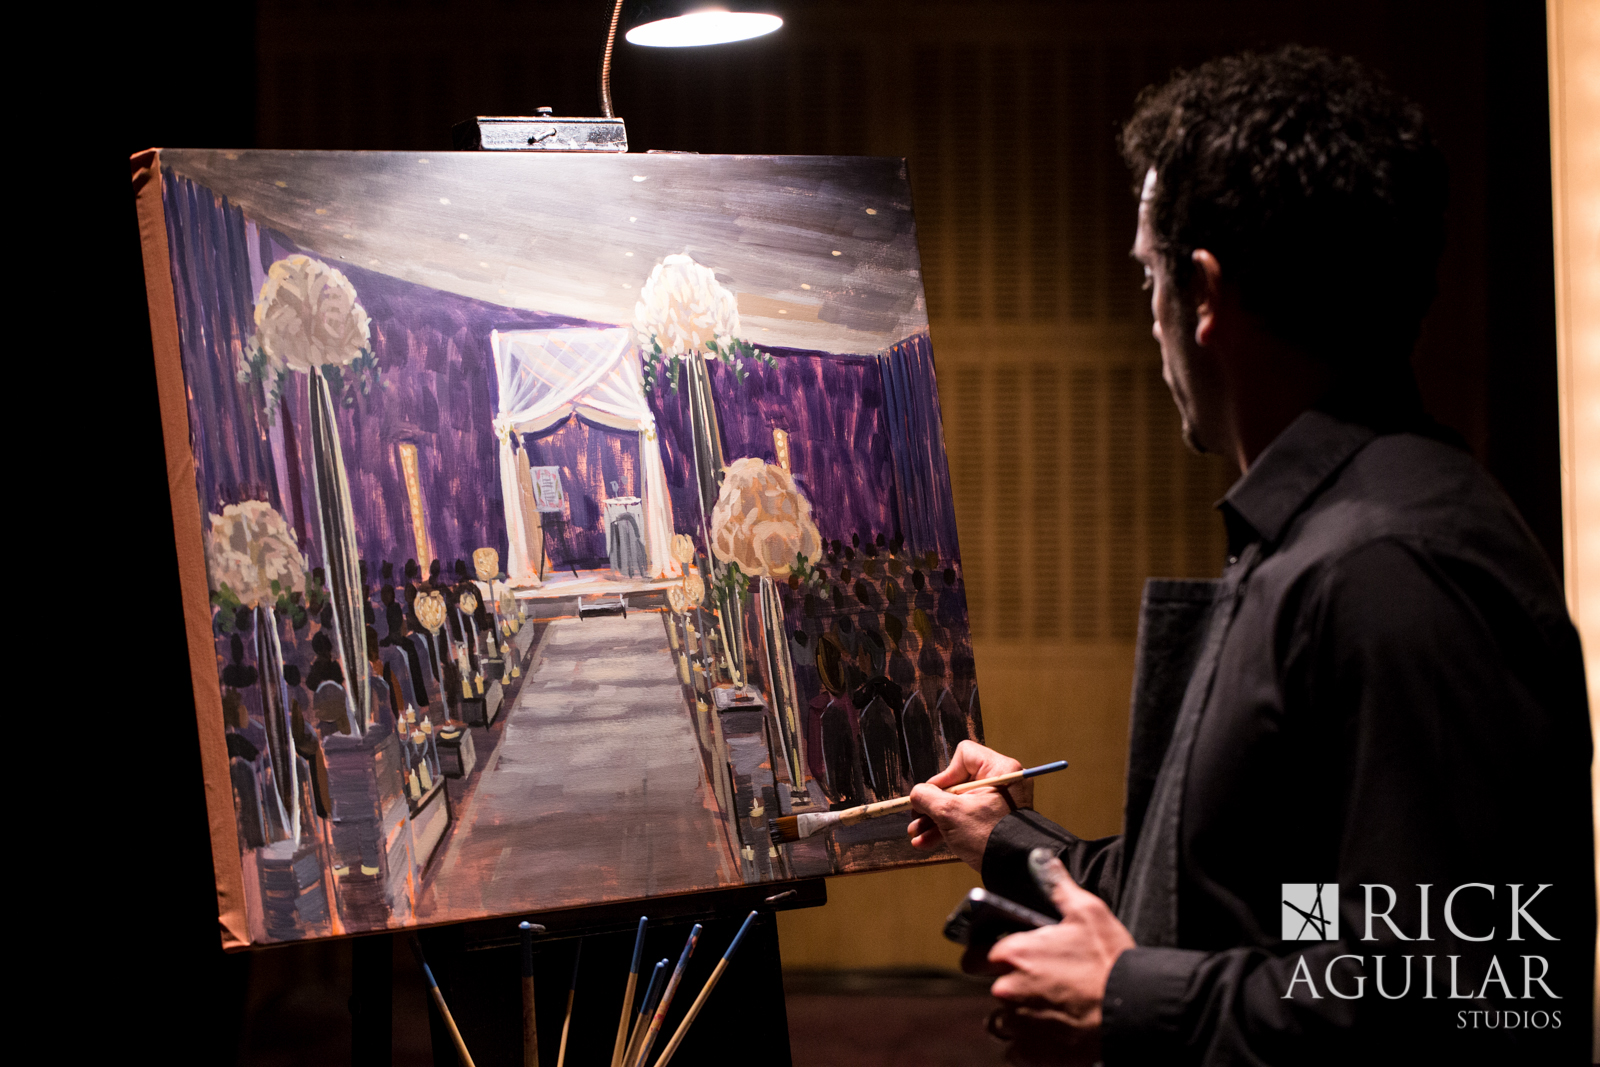 live-wedding-artist-ben-keys-chicago-wedding-painter-wed-on-canvas-wedding-artist-miami-charleston